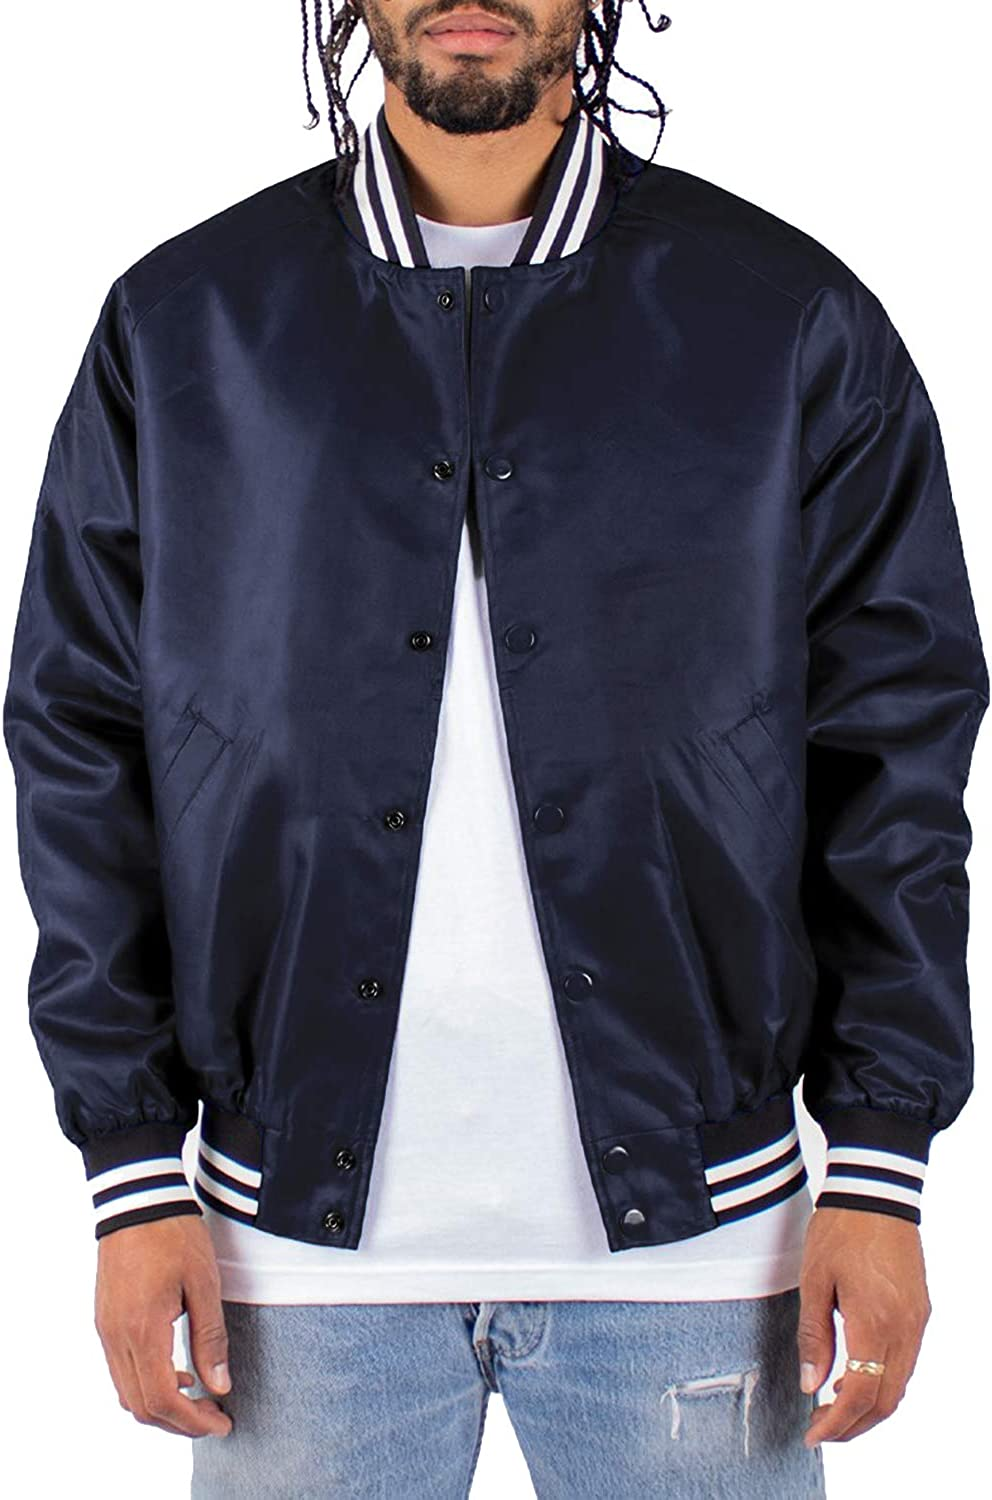 Shaka Wear Men's Bomber Jacket – Classic Padded Relaxed Fit Water Resistant College Baseball Varsity Coat S-3XL